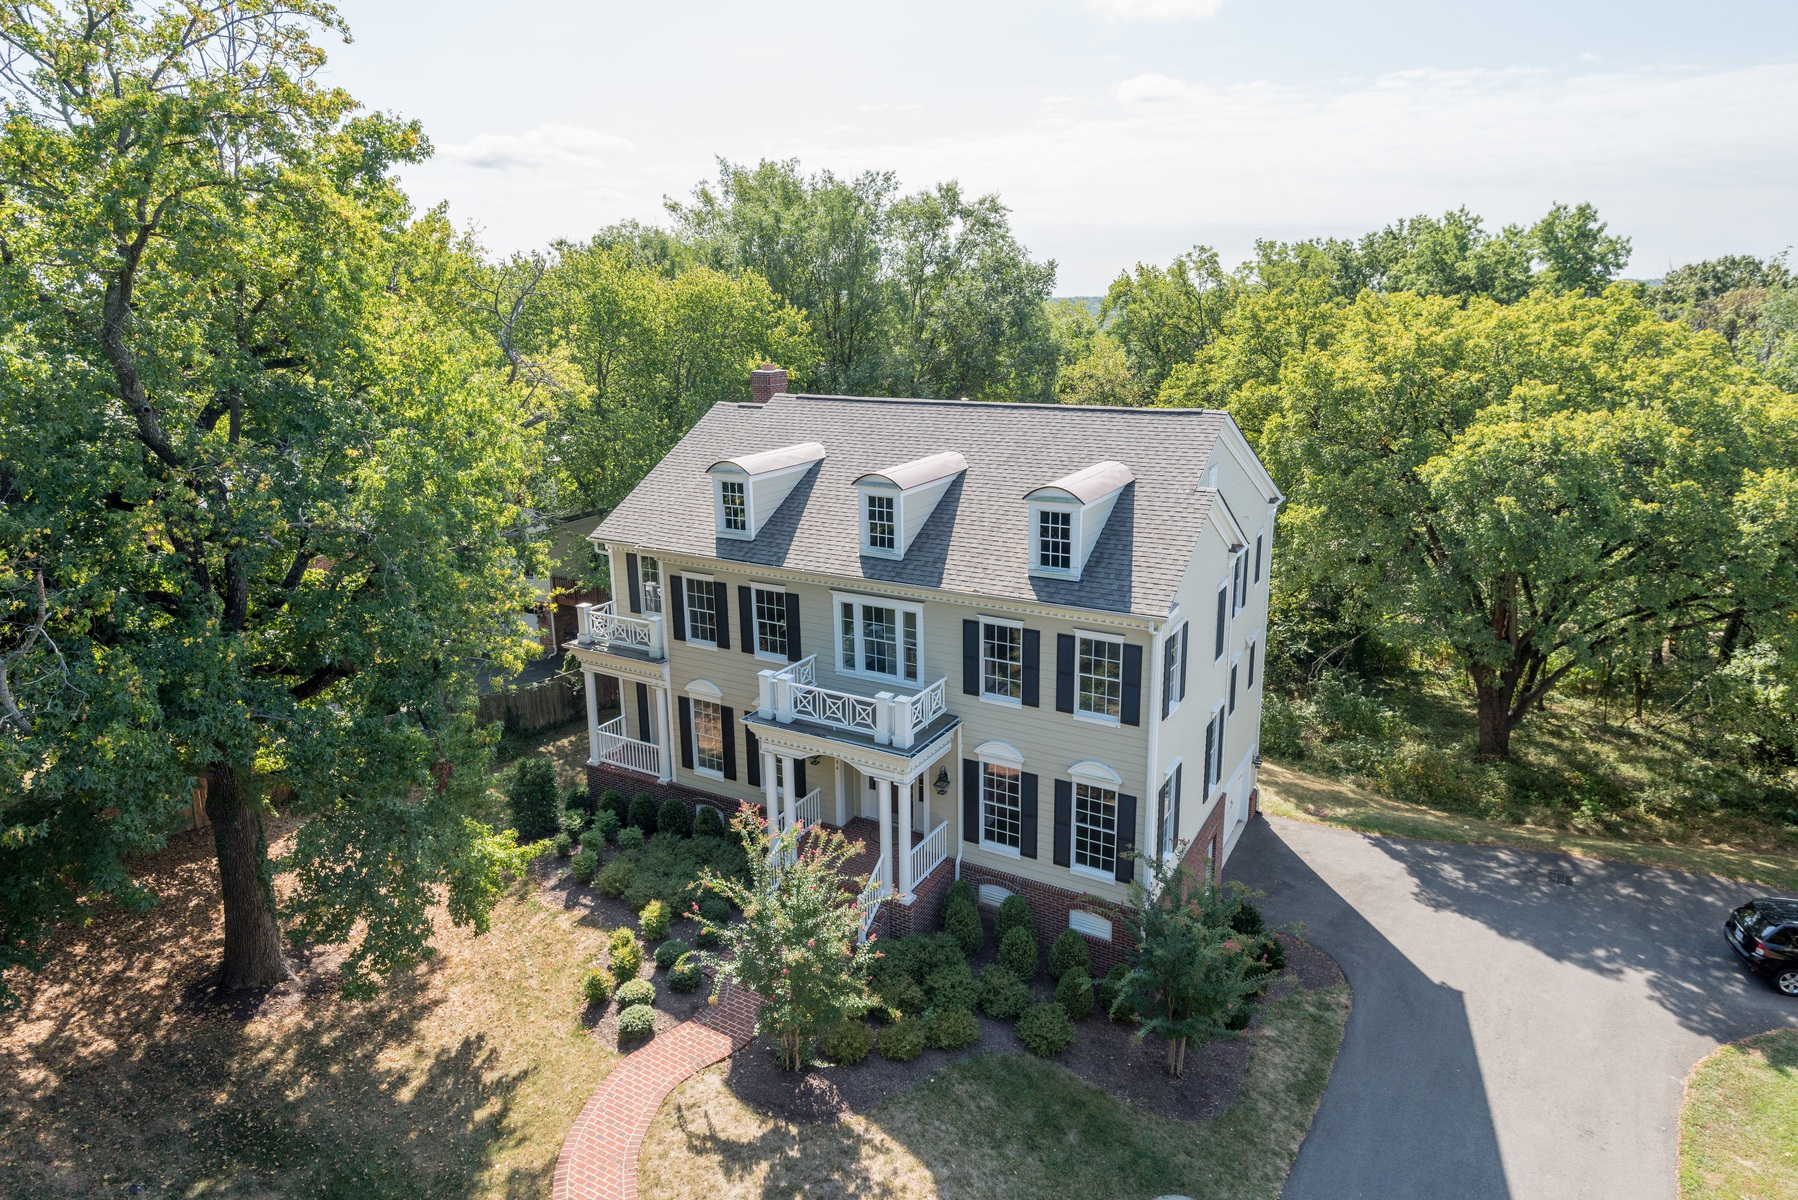 Additional photo for property listing at Cooper Dawson 104 Quaker Lane N Alexandria, Virginia 22304 Vereinigte Staaten